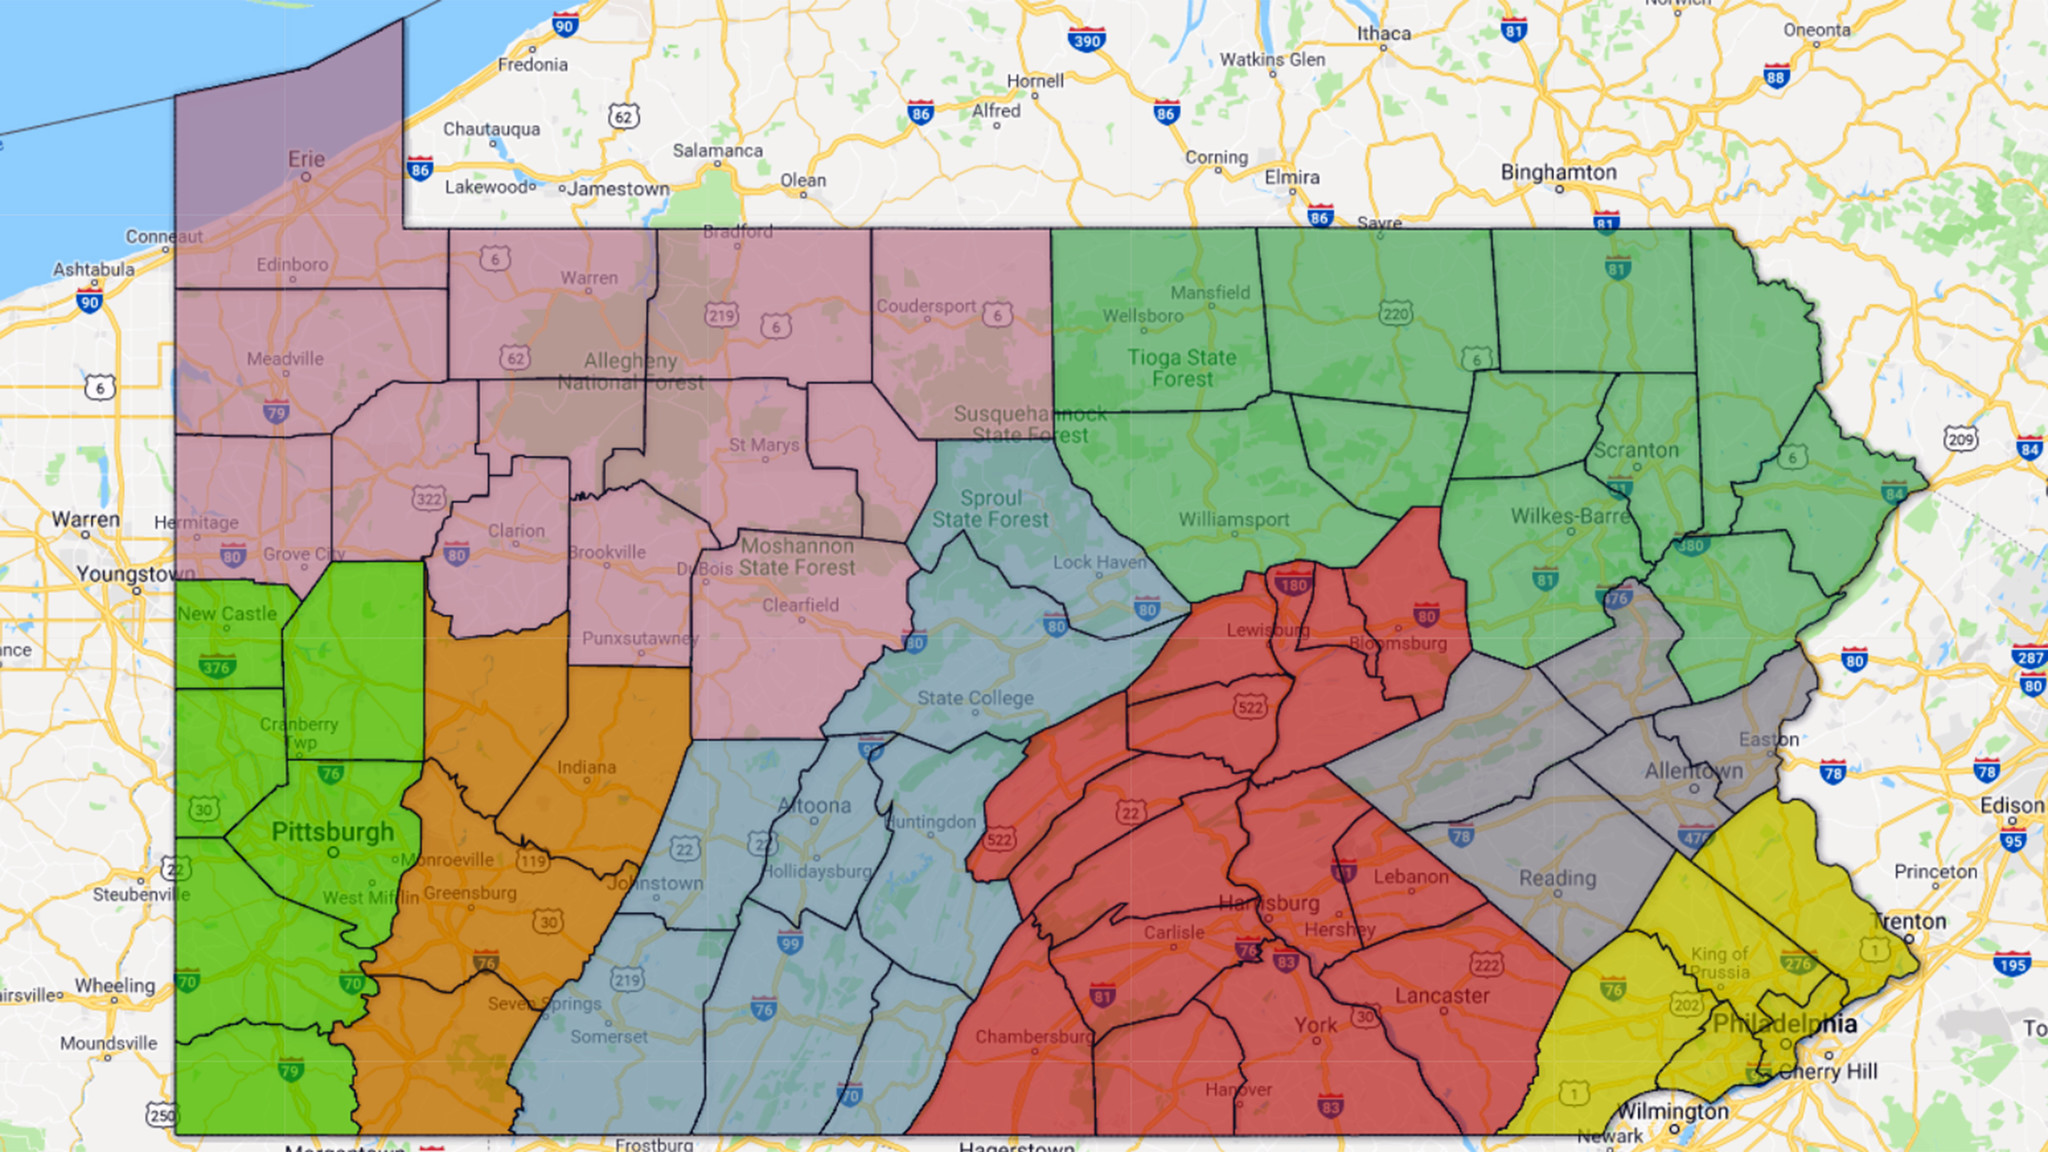 MAP: Number of accused clergy in Pa. Catholic dioceses - The Morning Call